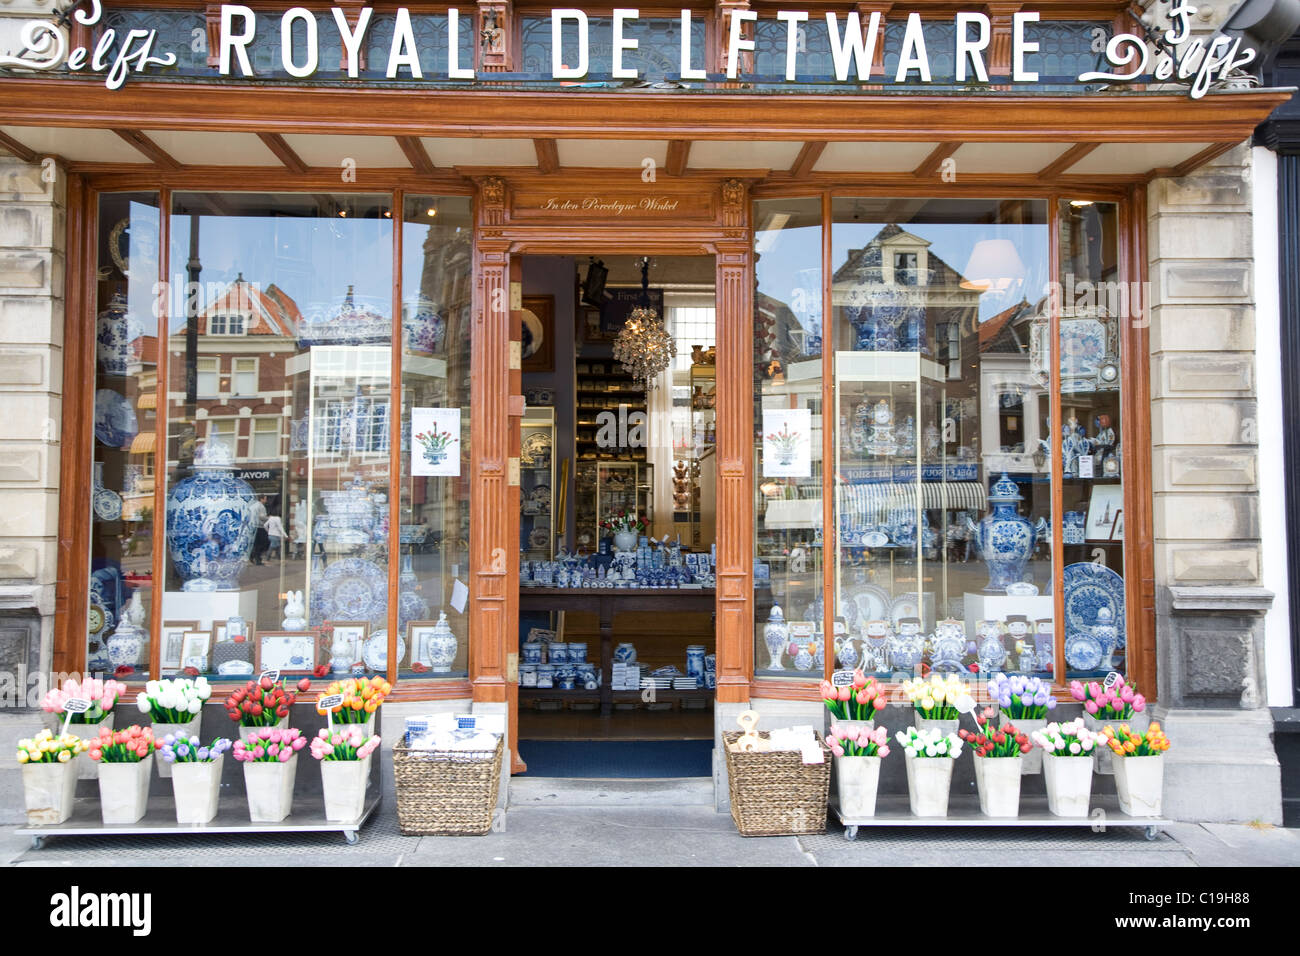 Royal Delftware pottery shop front in Delft, Netherlands. - Stock Image